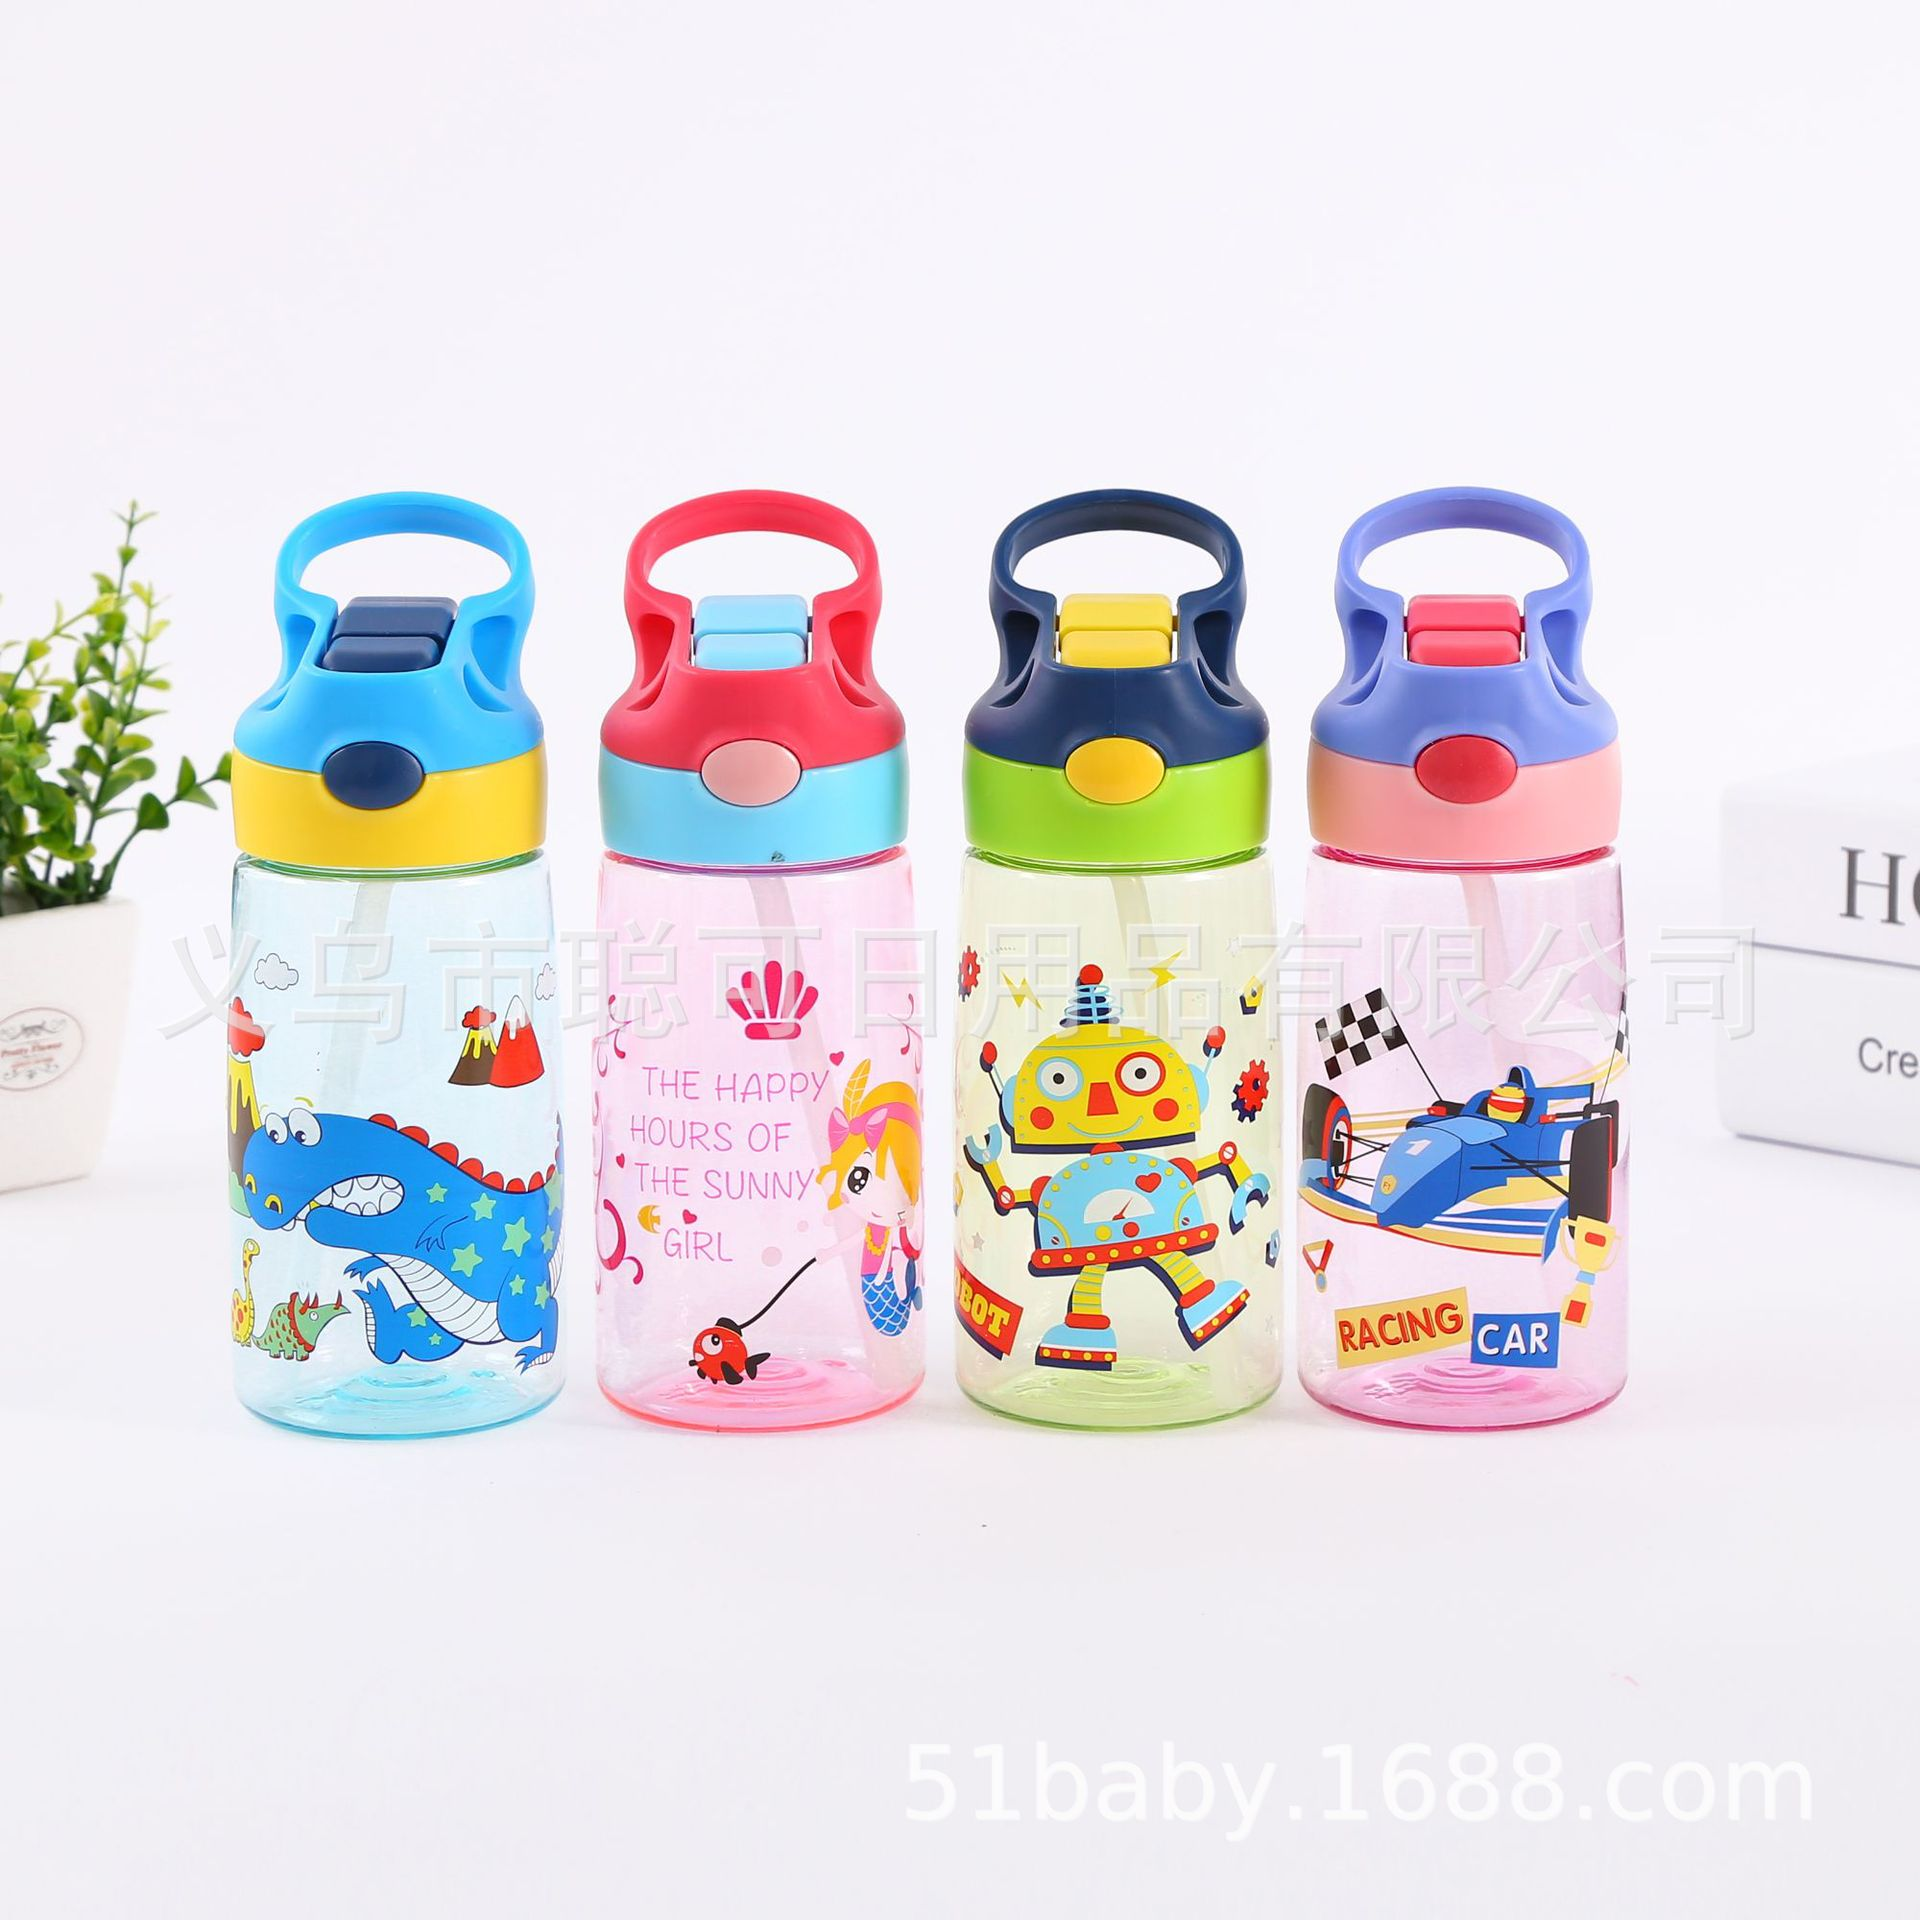 2019 New Style Children's Plastic Straw Cup Contigo Water Cup Cartoon Kindergarten Sippy Cup Sub-Sippy Cup